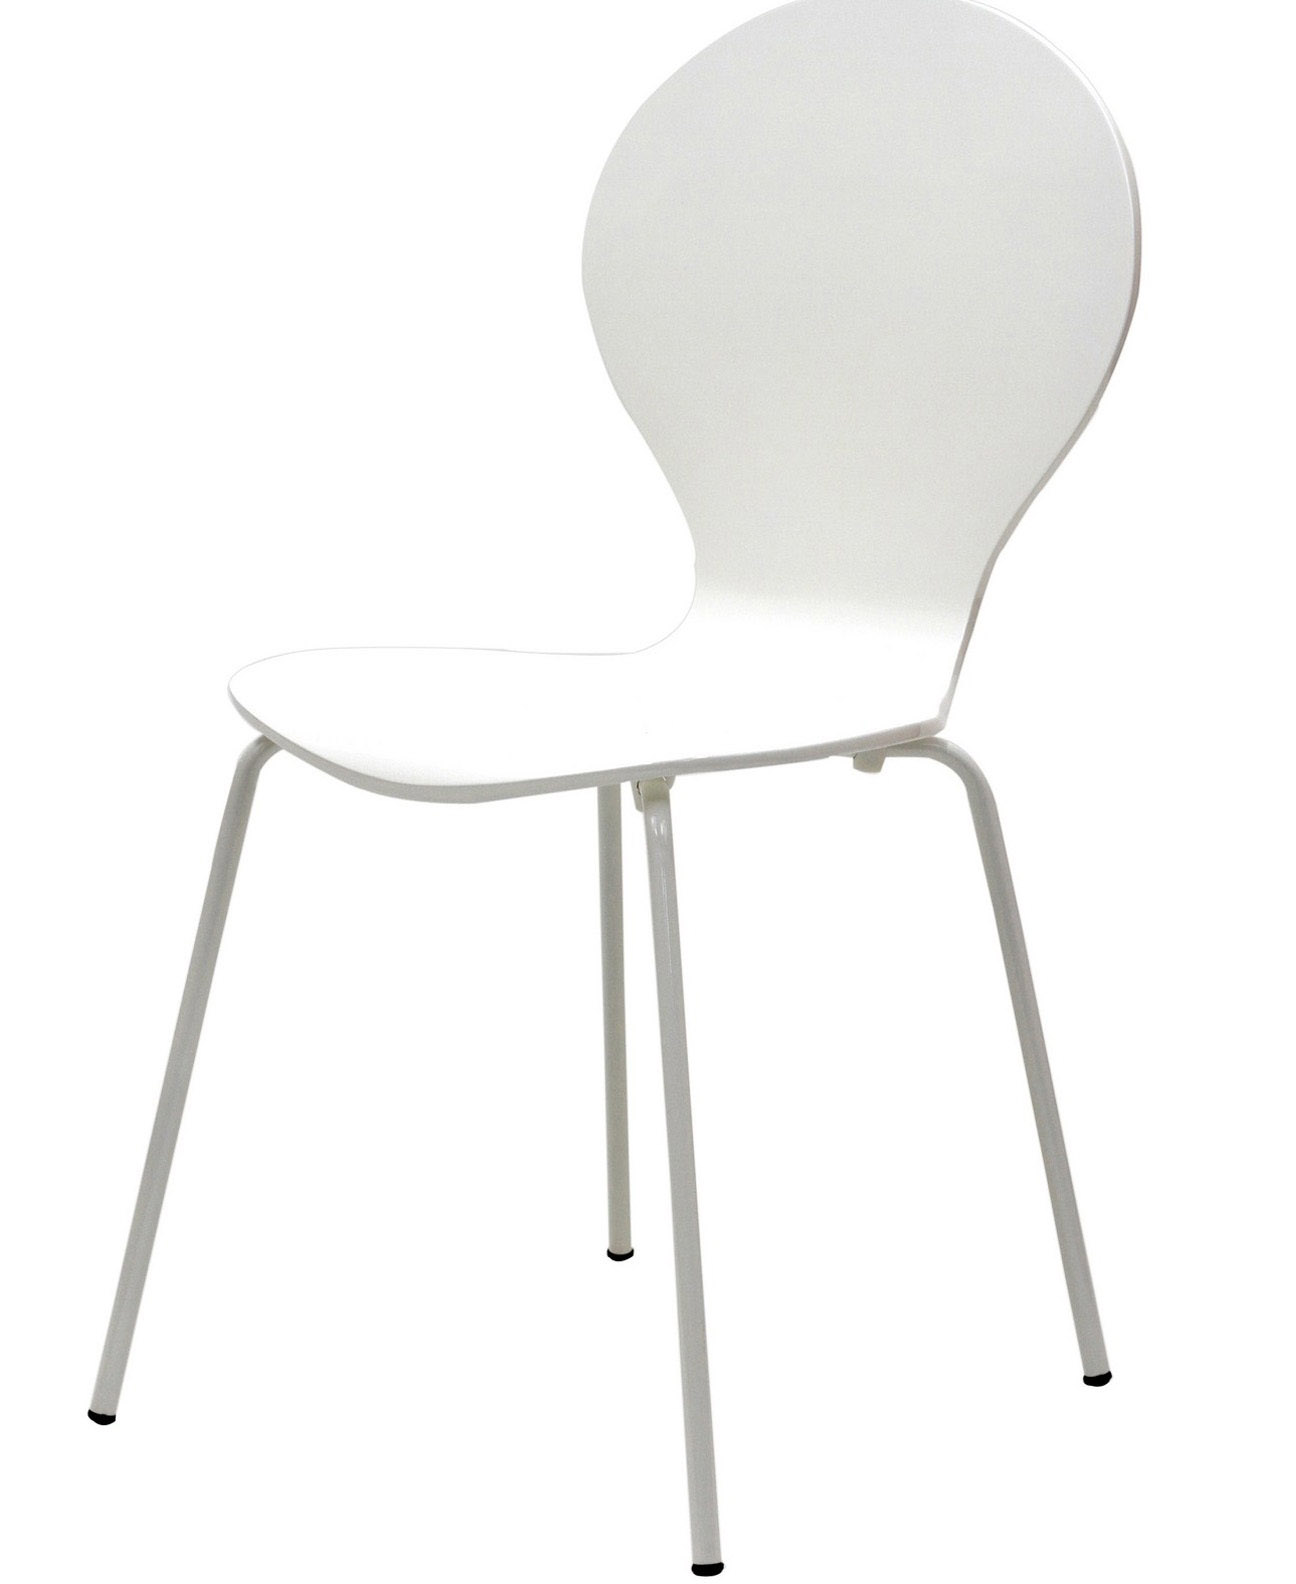 63 Clear Desk Chair Wholesale Gojo